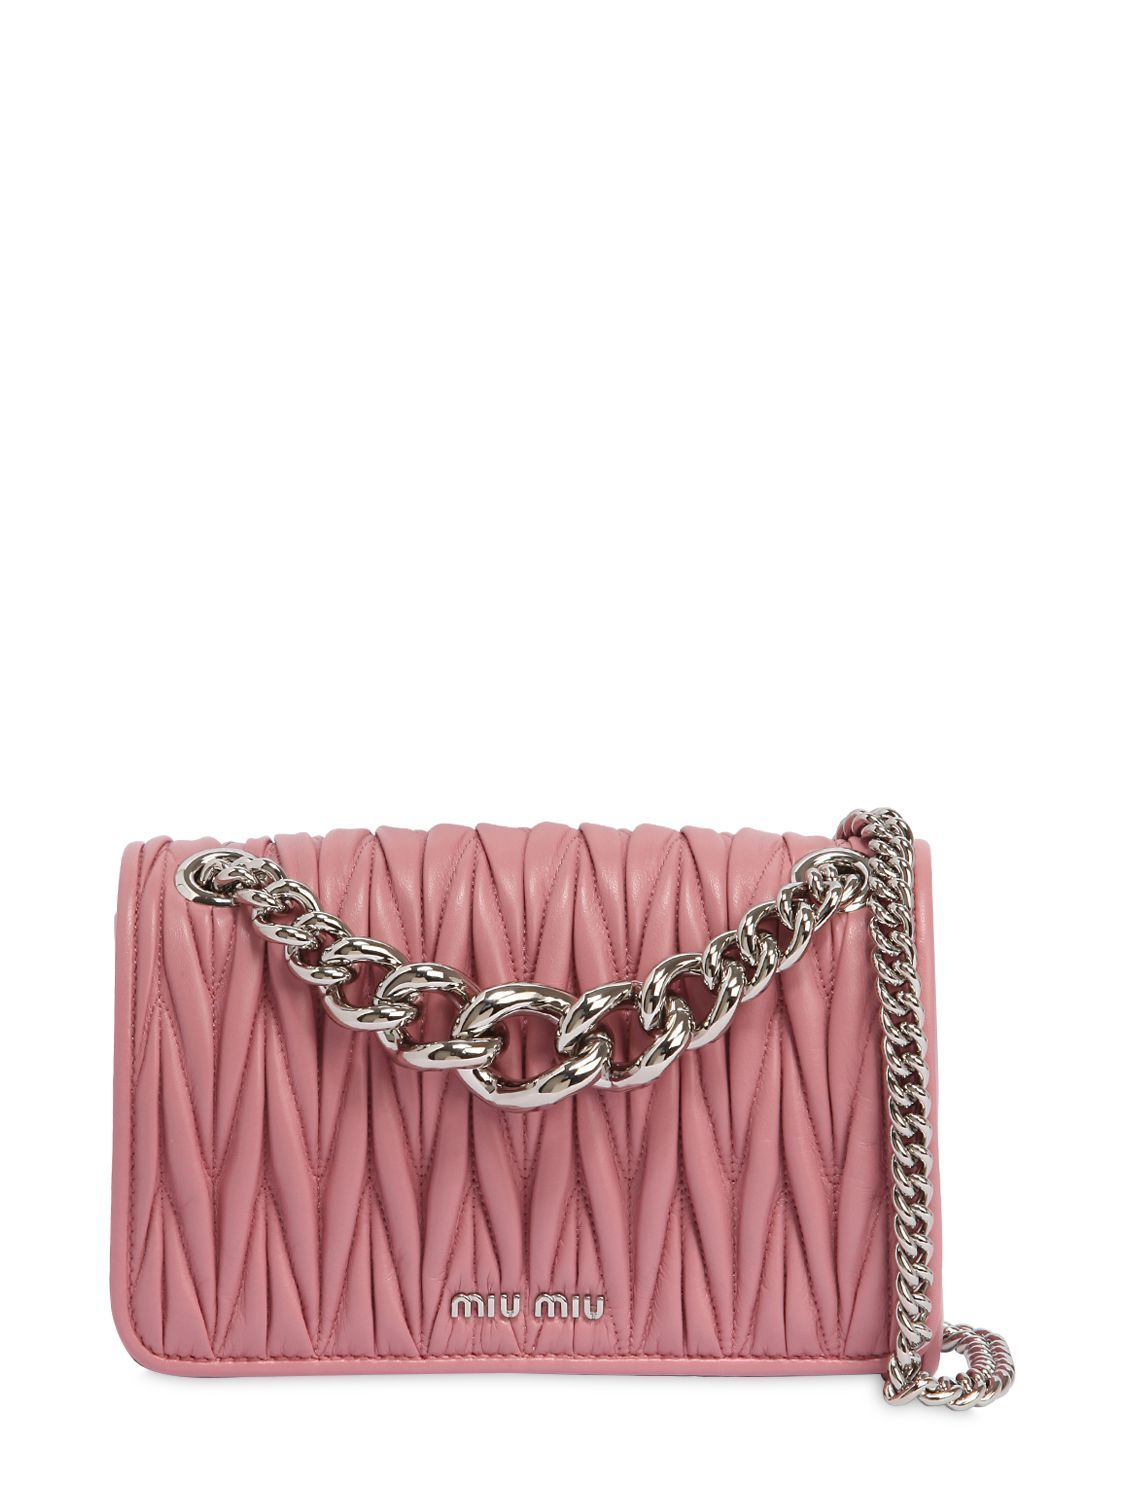 77ef41a9ee MIU MIU CLUB QUILTED LEATHER SHOULDER BAG. #miumiu #bags #shoulder bags  #leather #